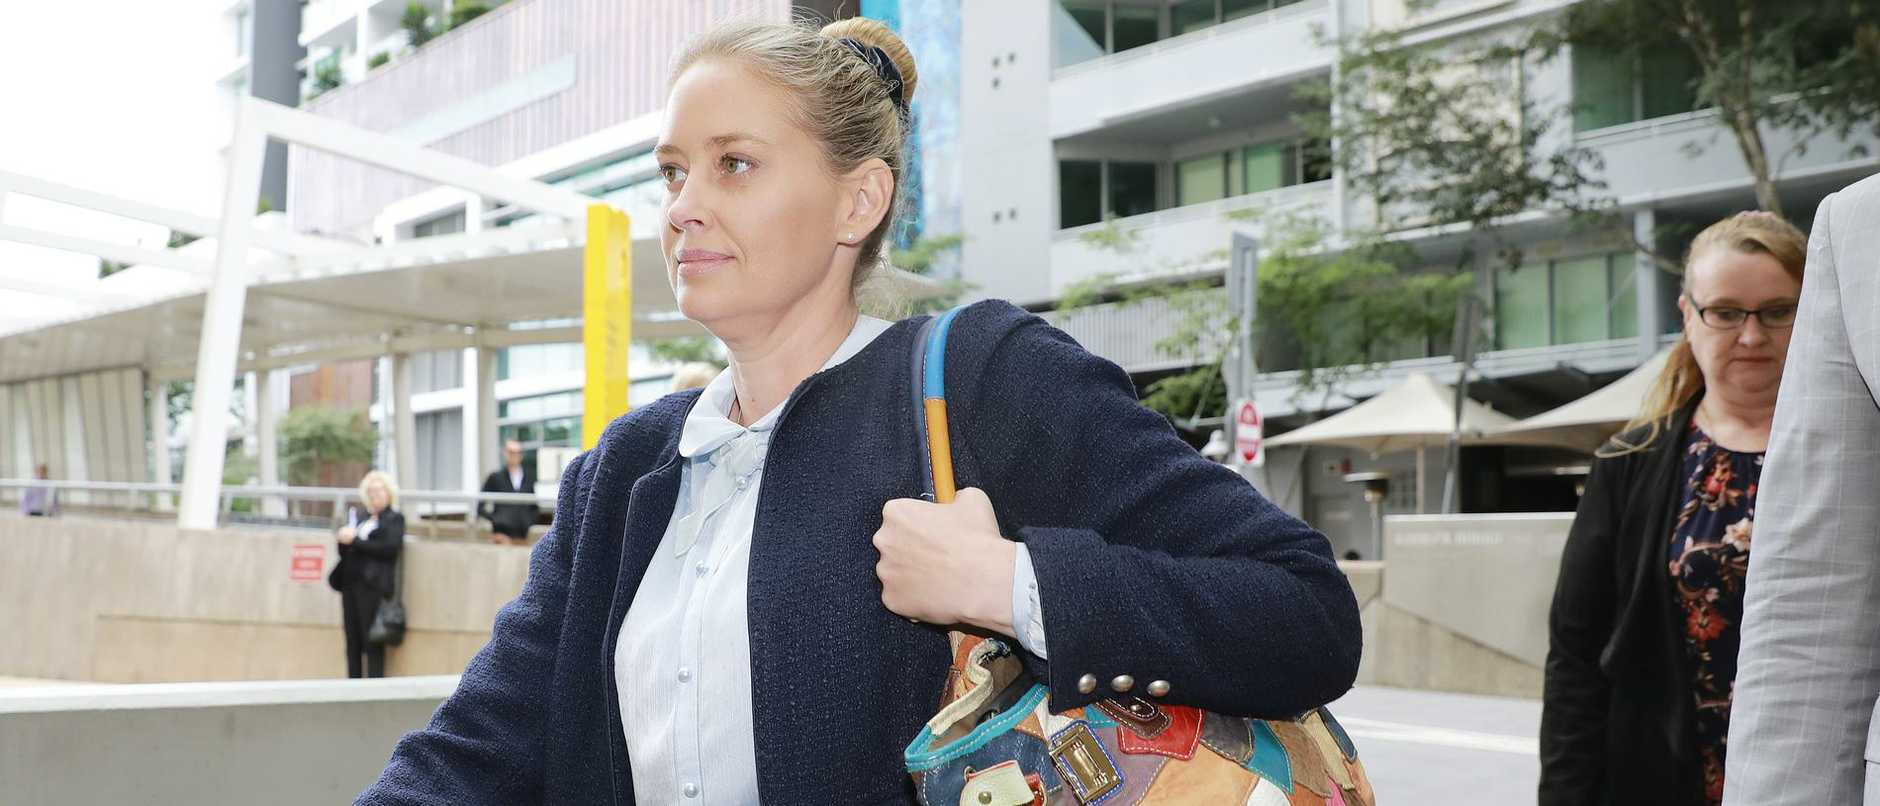 Rachel James (left) and Claire Smith (rear) leave Federal Court in Brisbane.